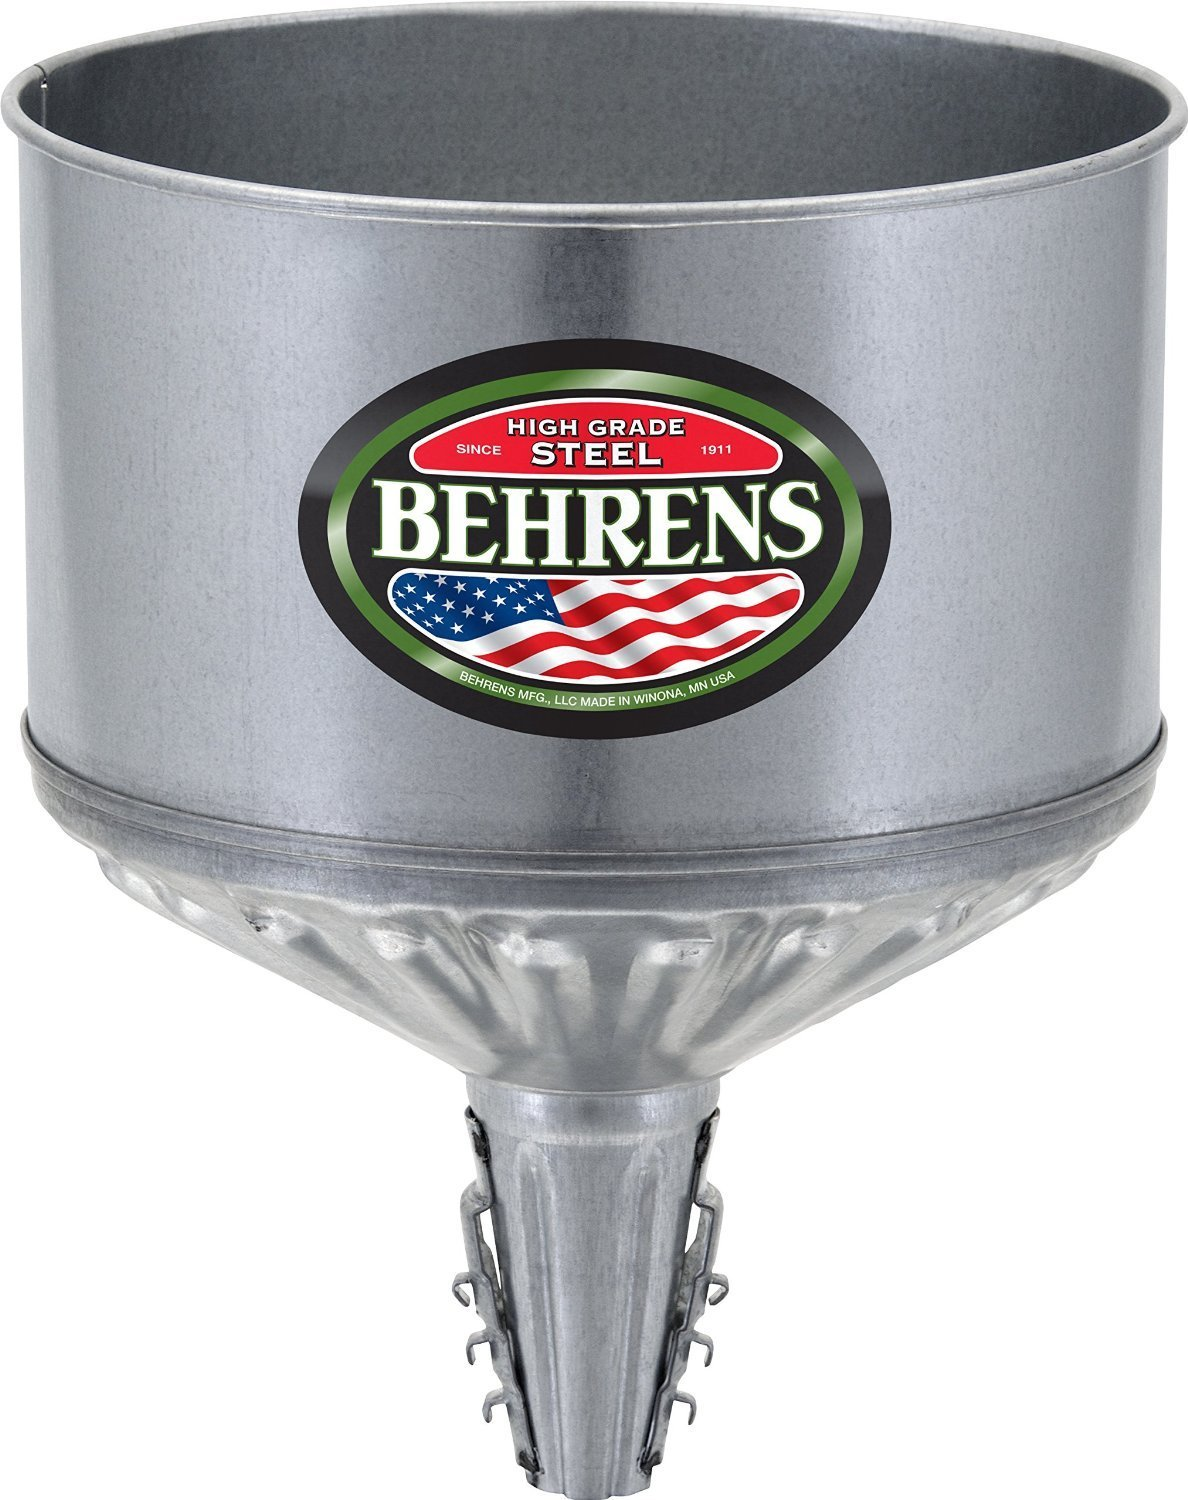 Behrens Lock On Tractor Funnel 1 Gal Galvanized Steel Construction 10.25'' Top